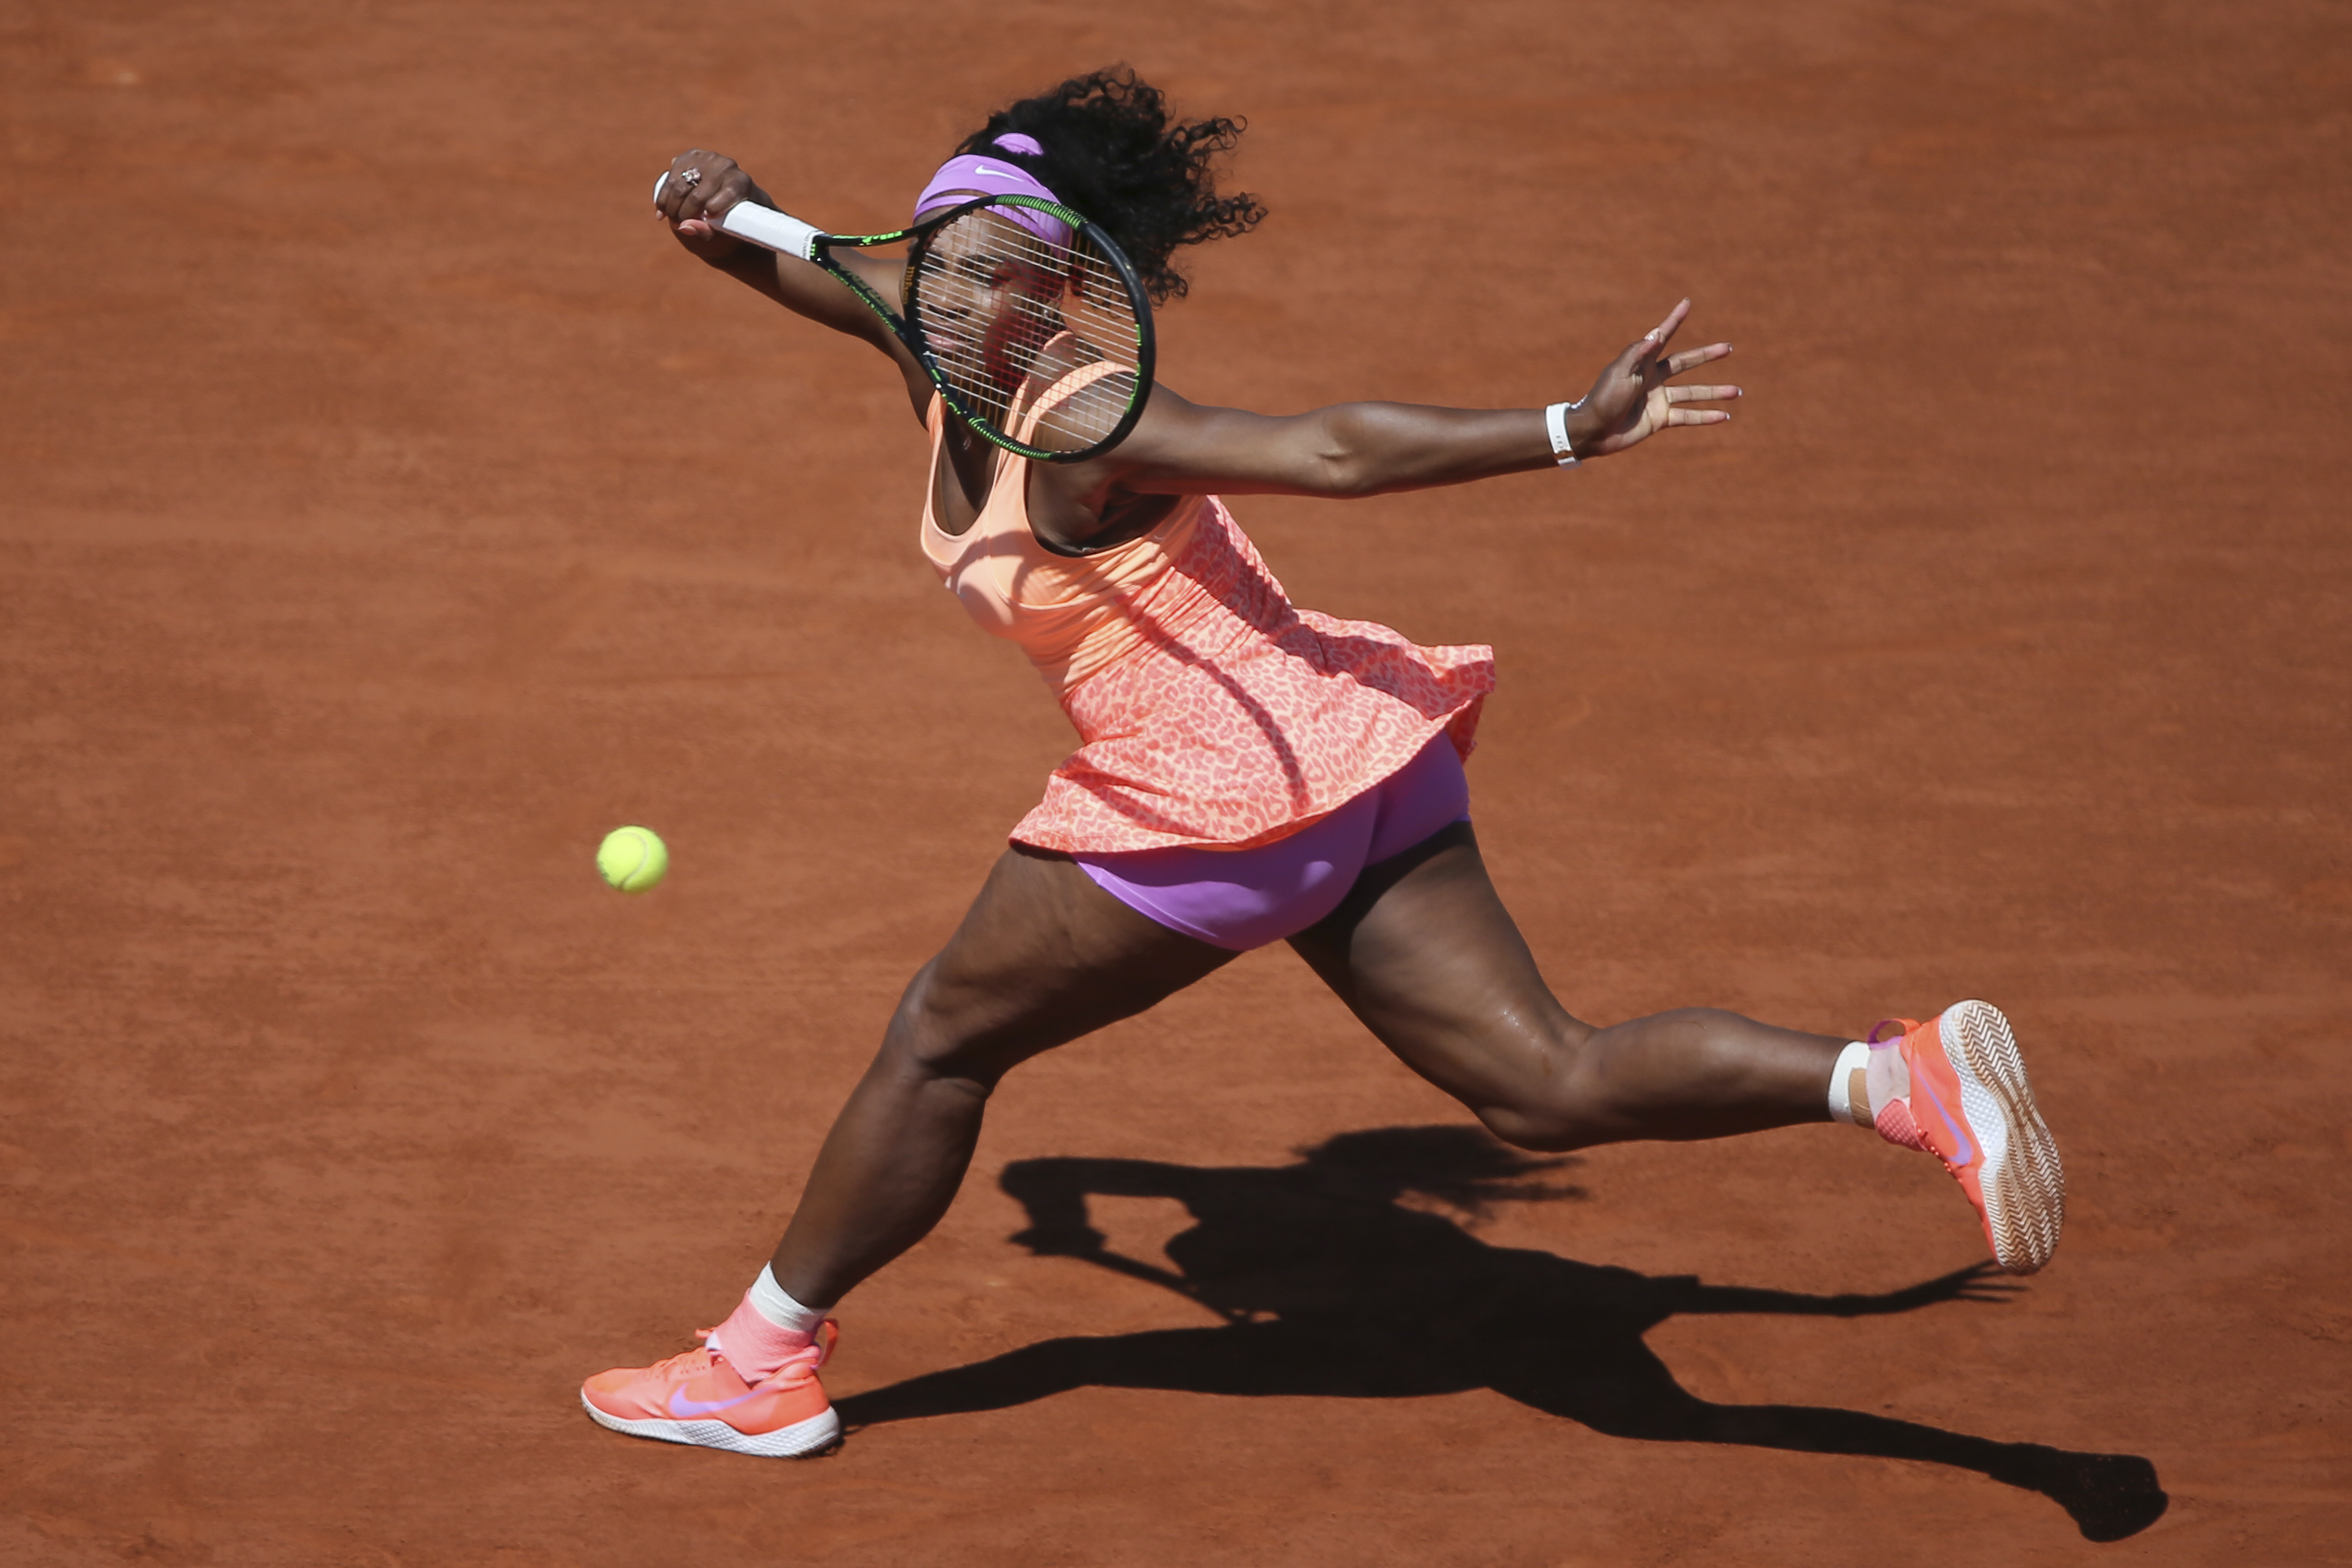 FILE - In this June 6, 2015, file photo, Serena Williams returns in the final of the French Open tennis tournament against Lucie Safarova of the Czech Republic at Roland Garros stadium, in Paris, France. The French Open begins on Sunday, May 22, 2016. (AP